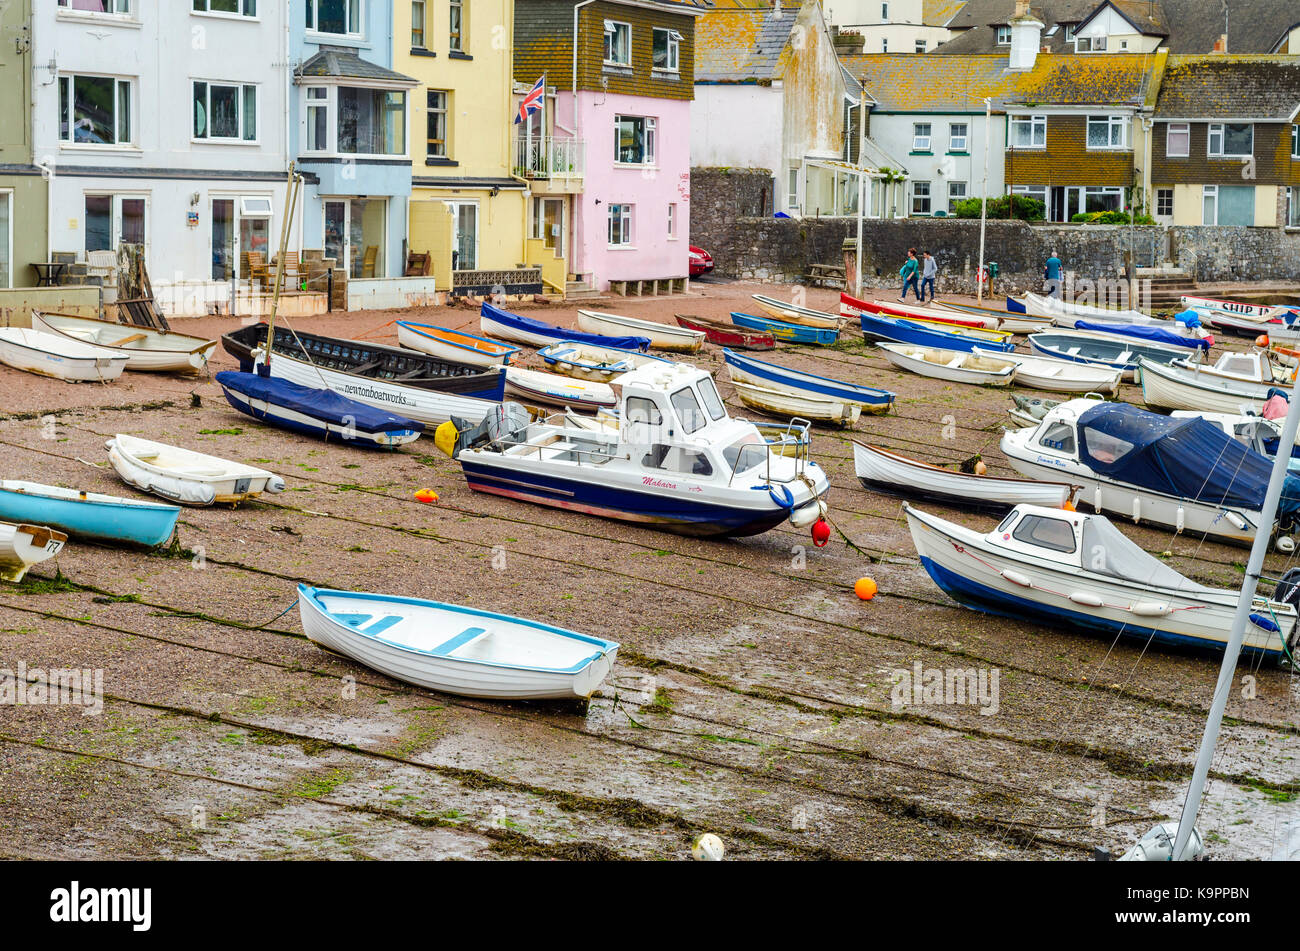 Boats moored on a beach in Teignmouth, Devon, England, UK Stock Photo